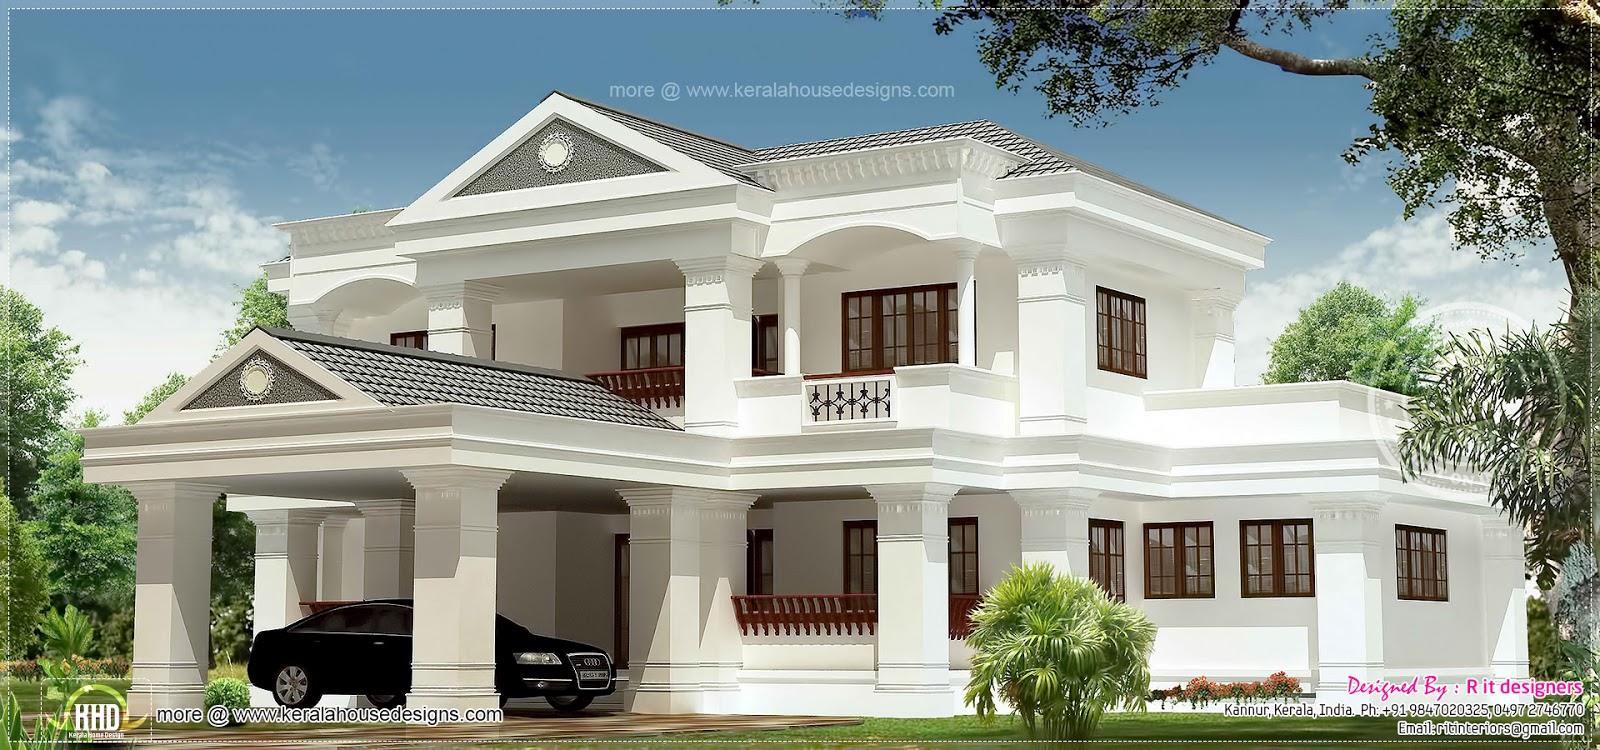 A Luxurious 5 Bhk Villa Elevation